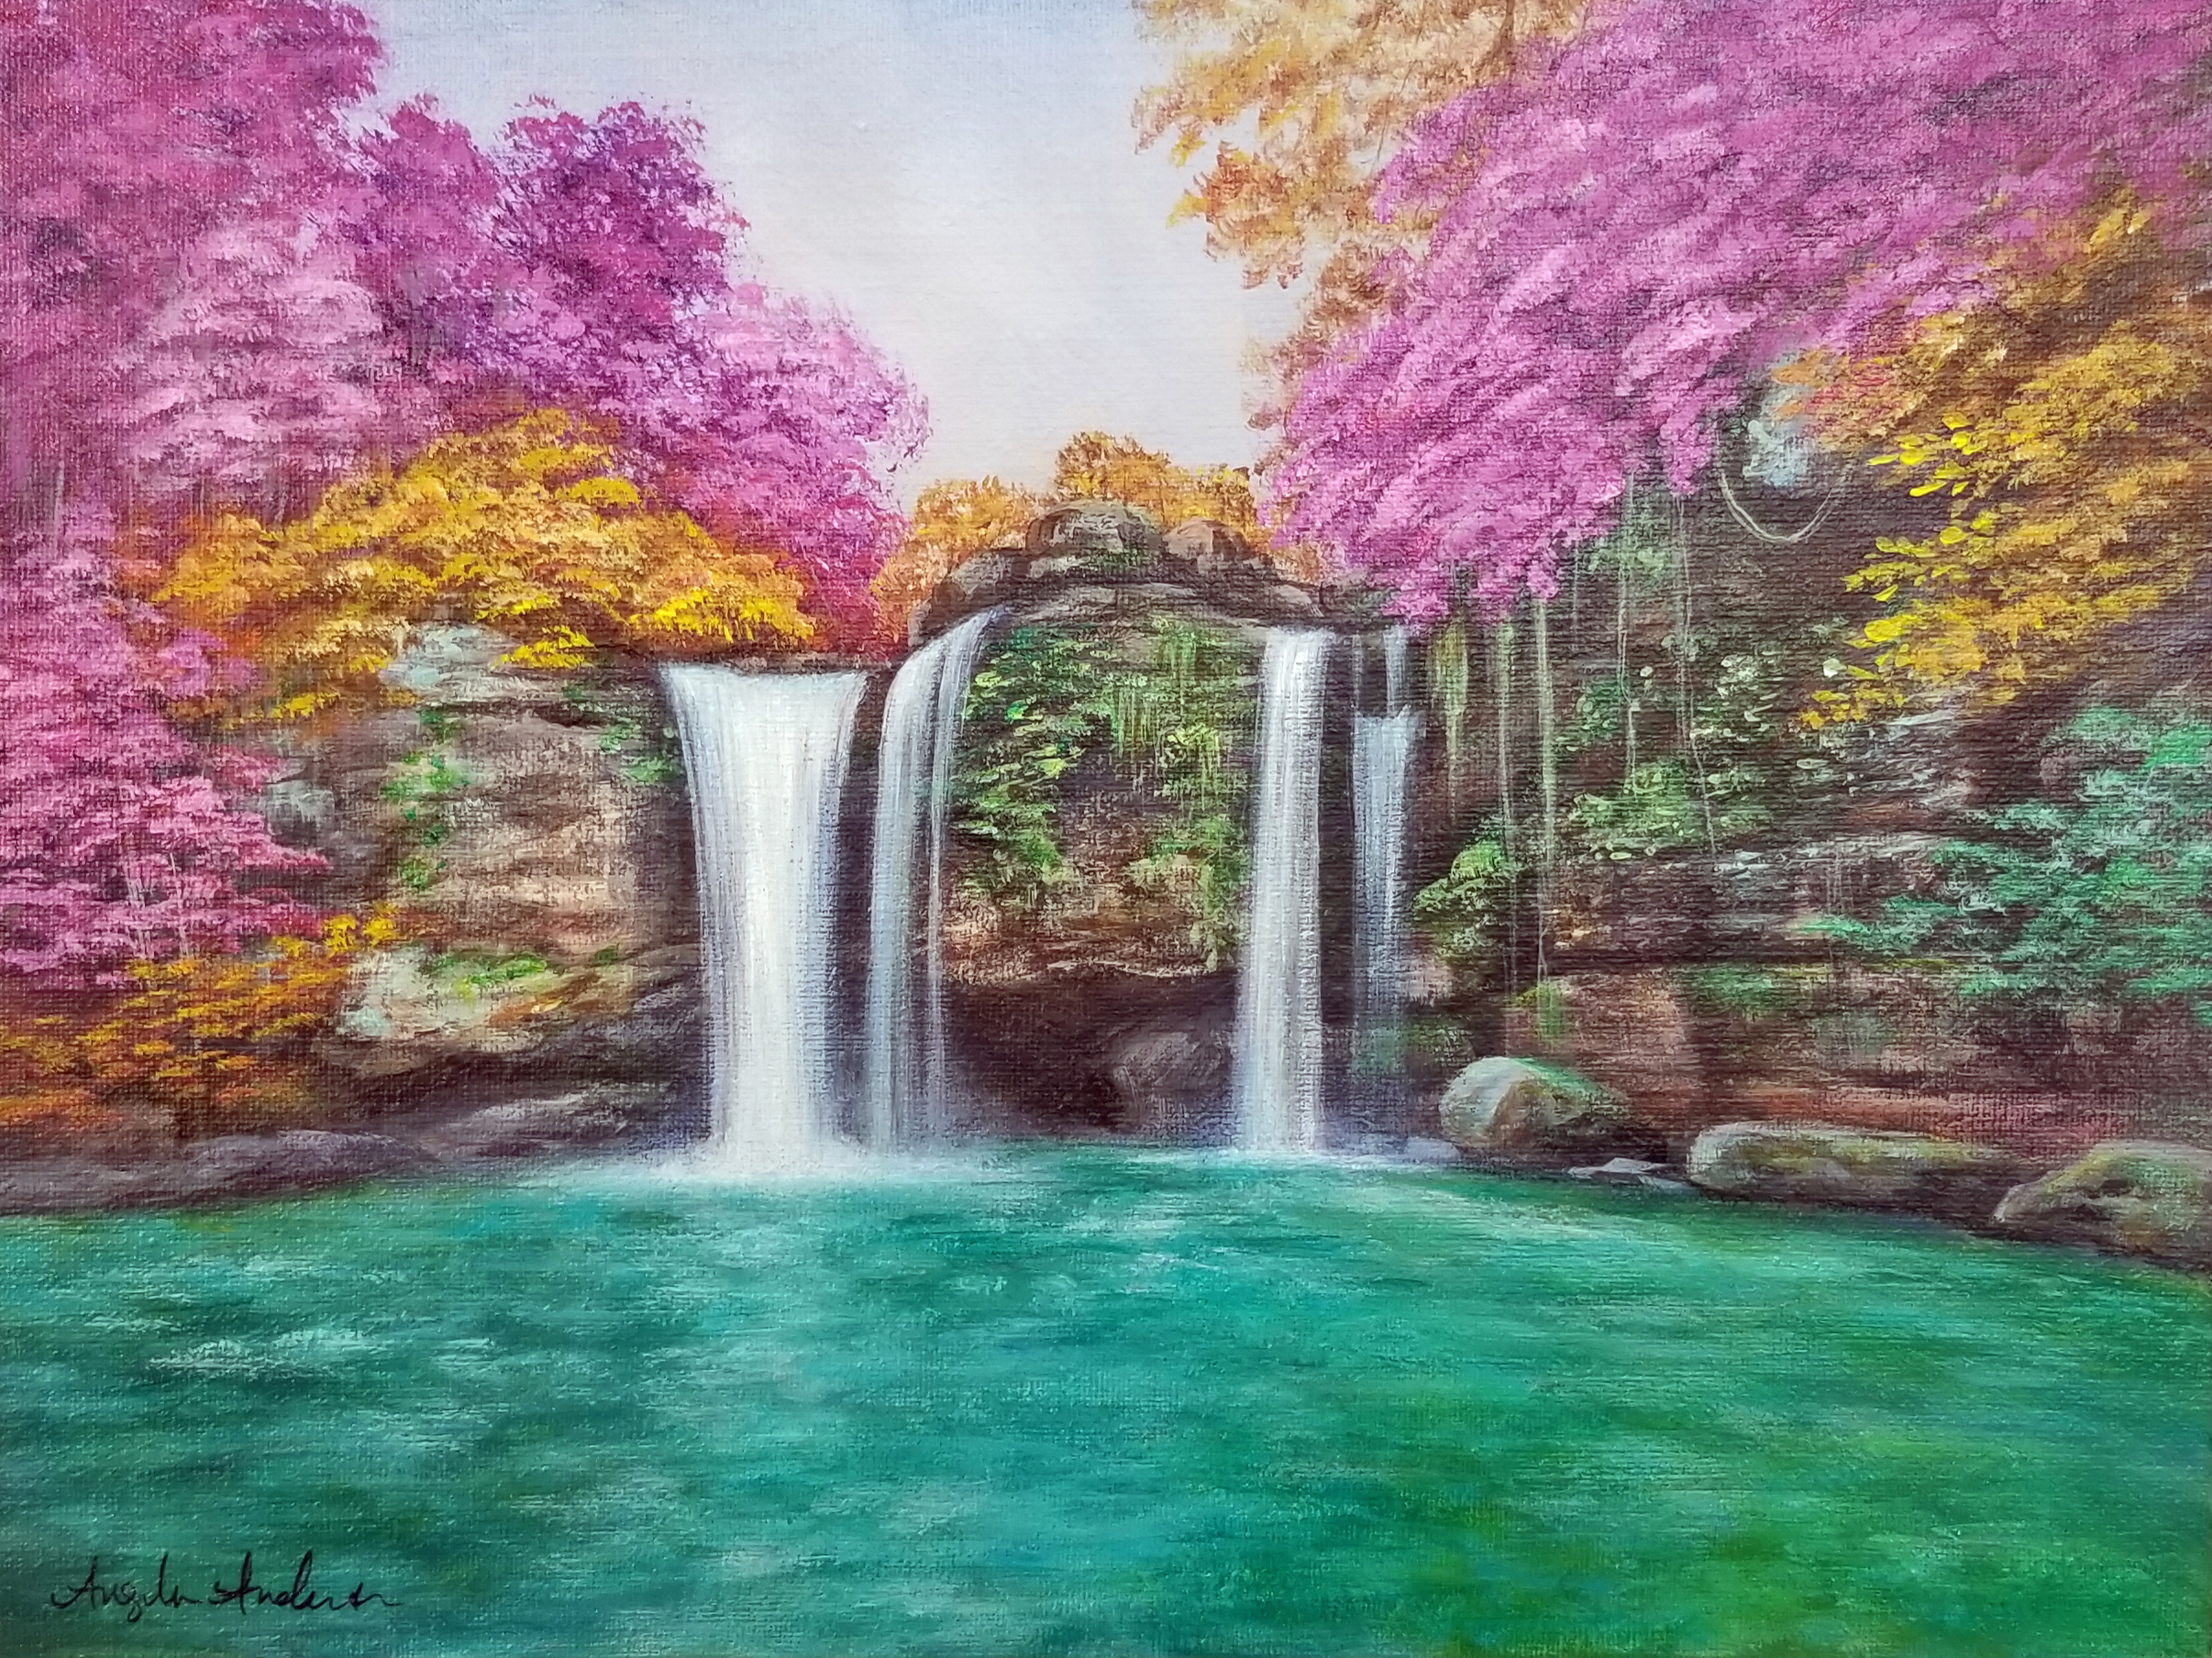 Colorful Waterfall (Bonus Video)